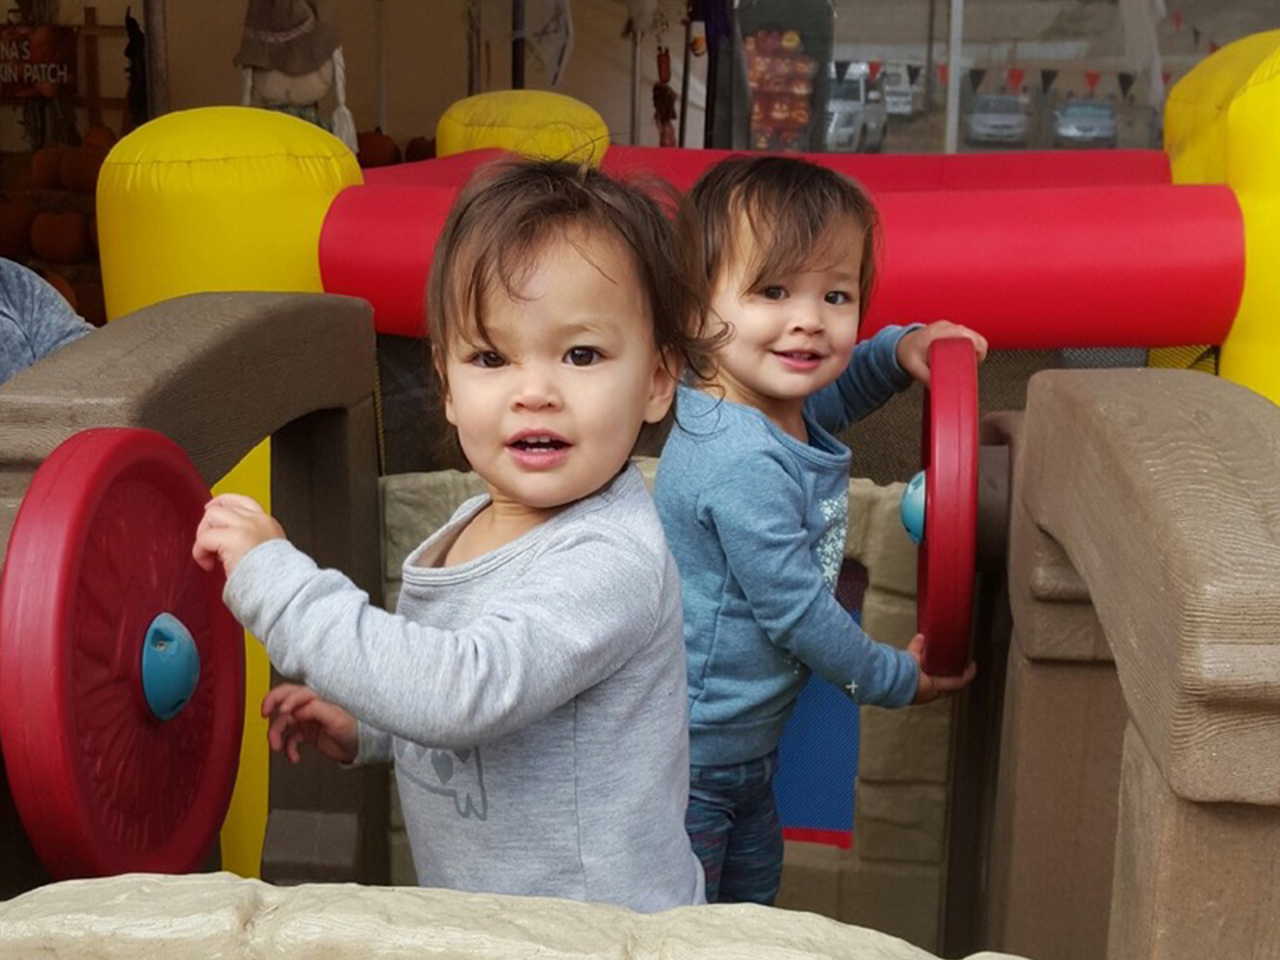 The authors twin daughters playing on a playground